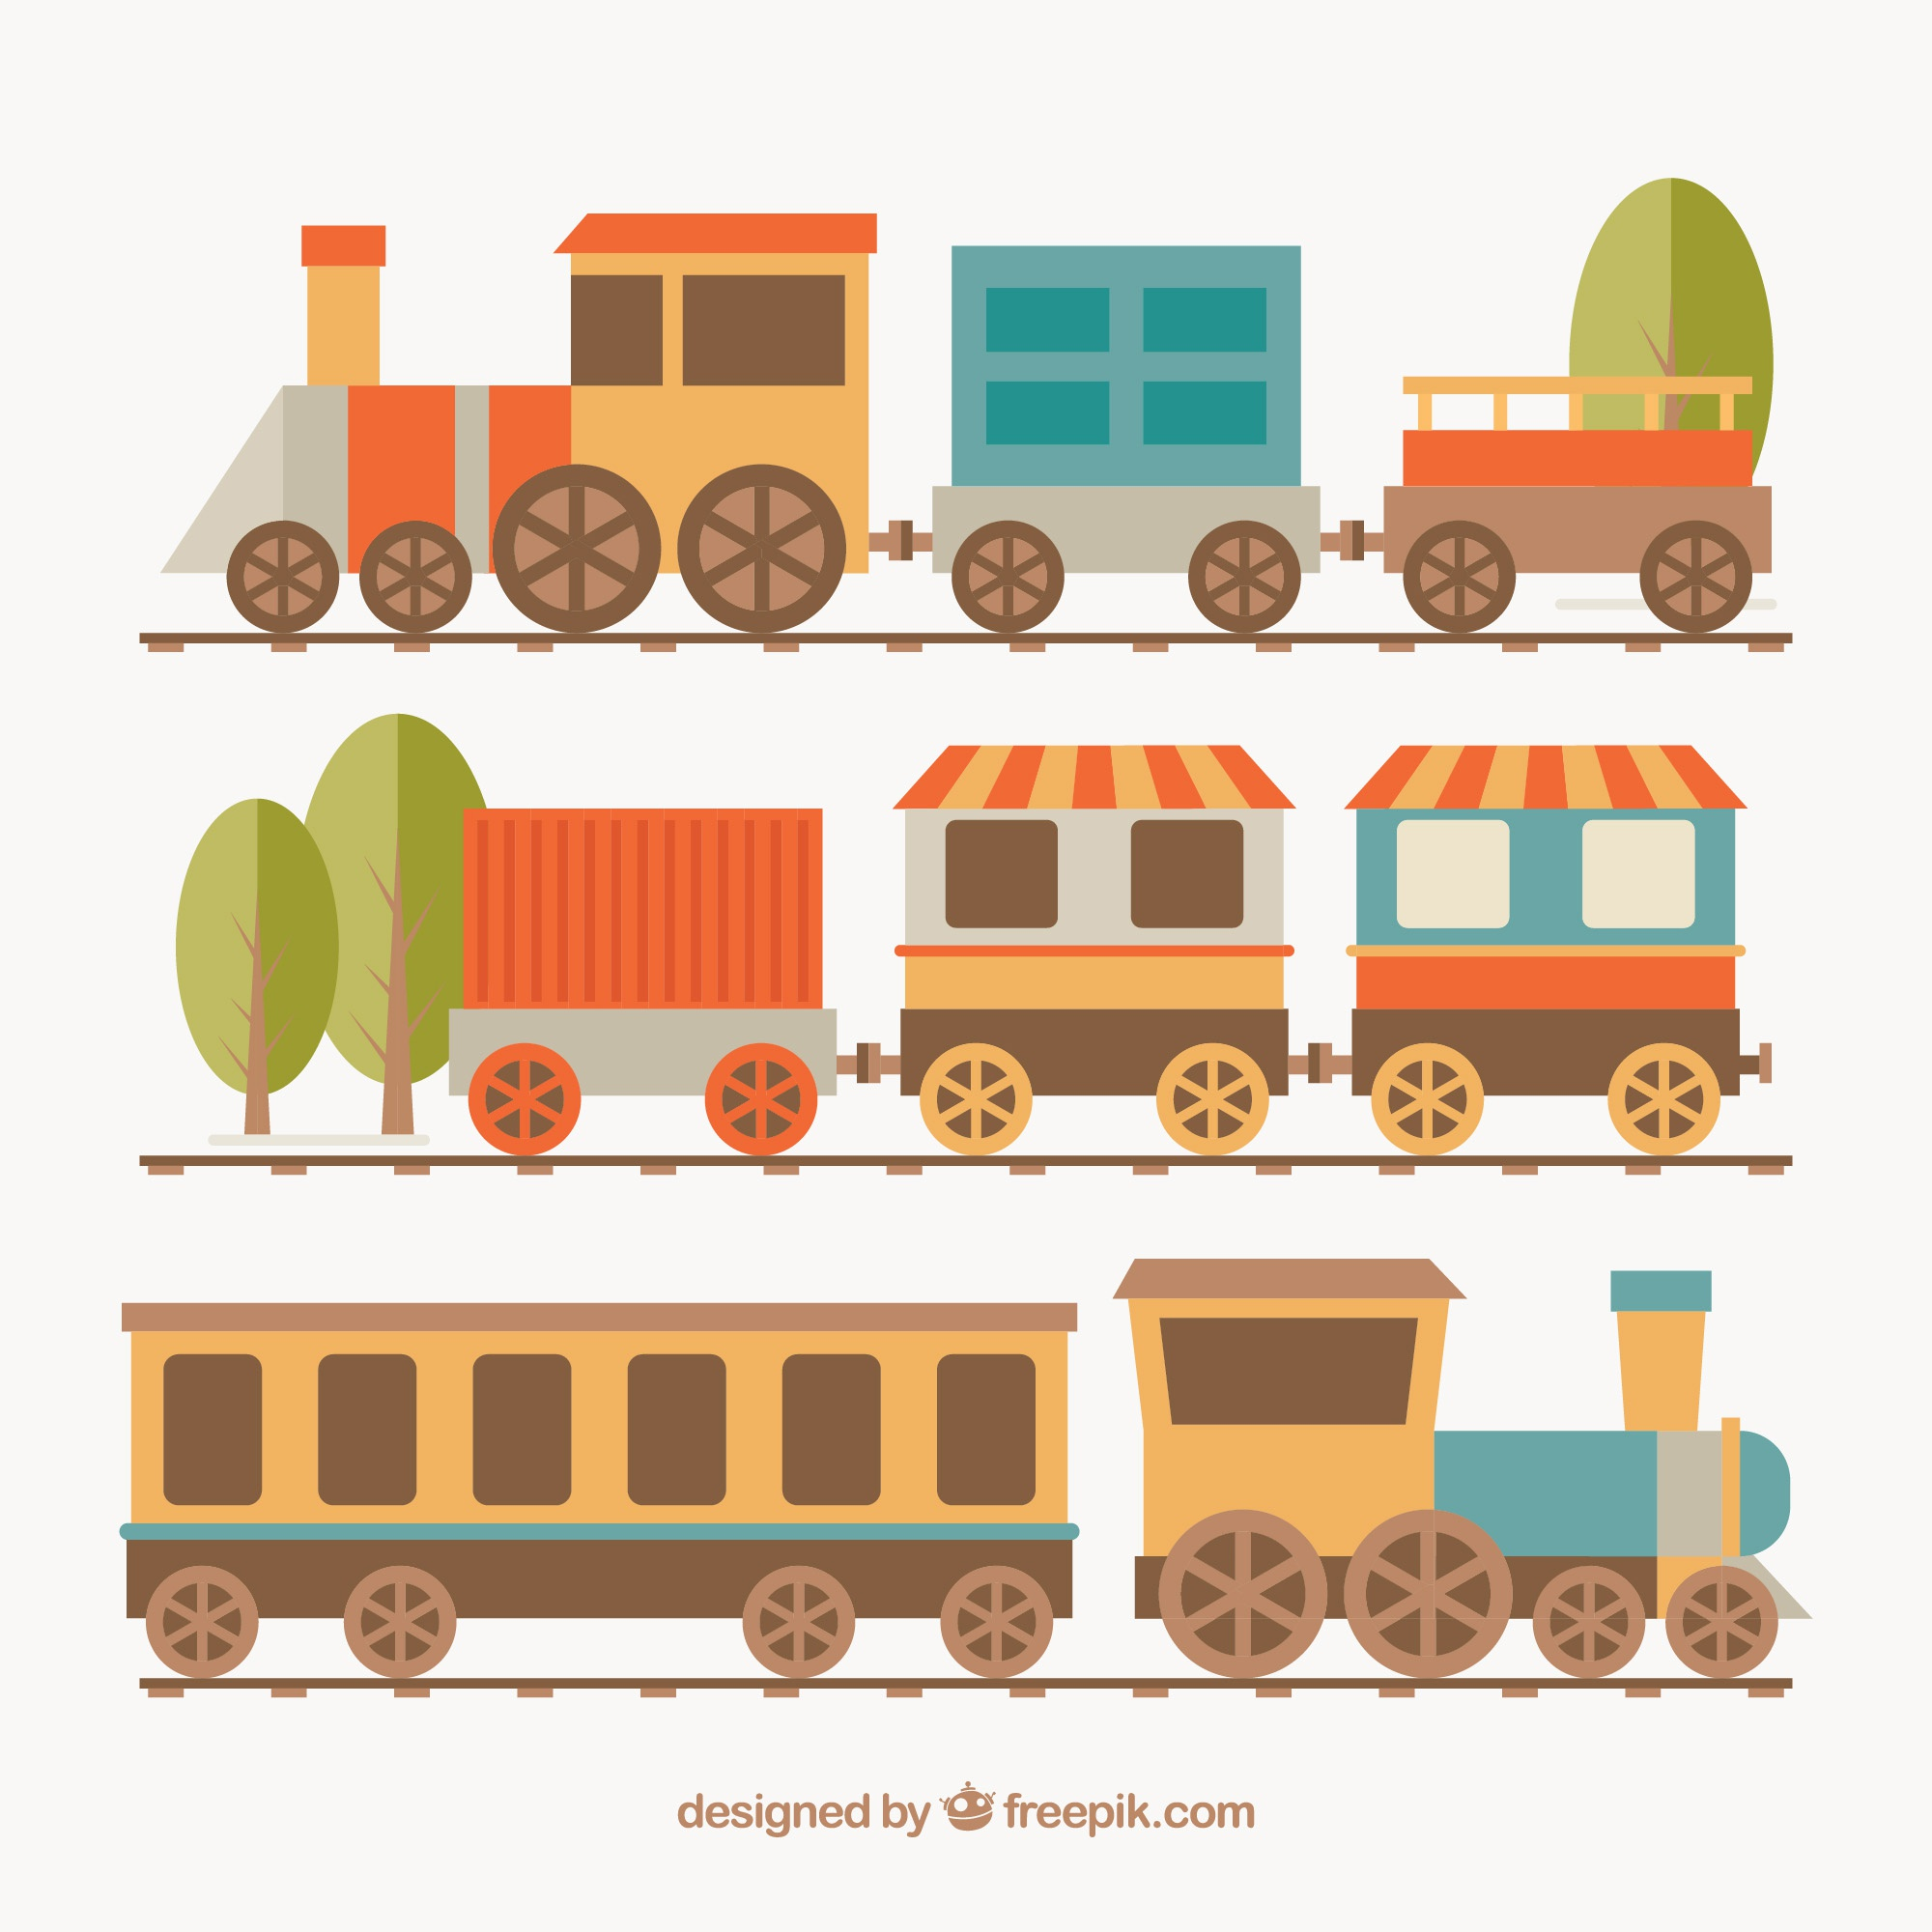 Several locomotives with wagons